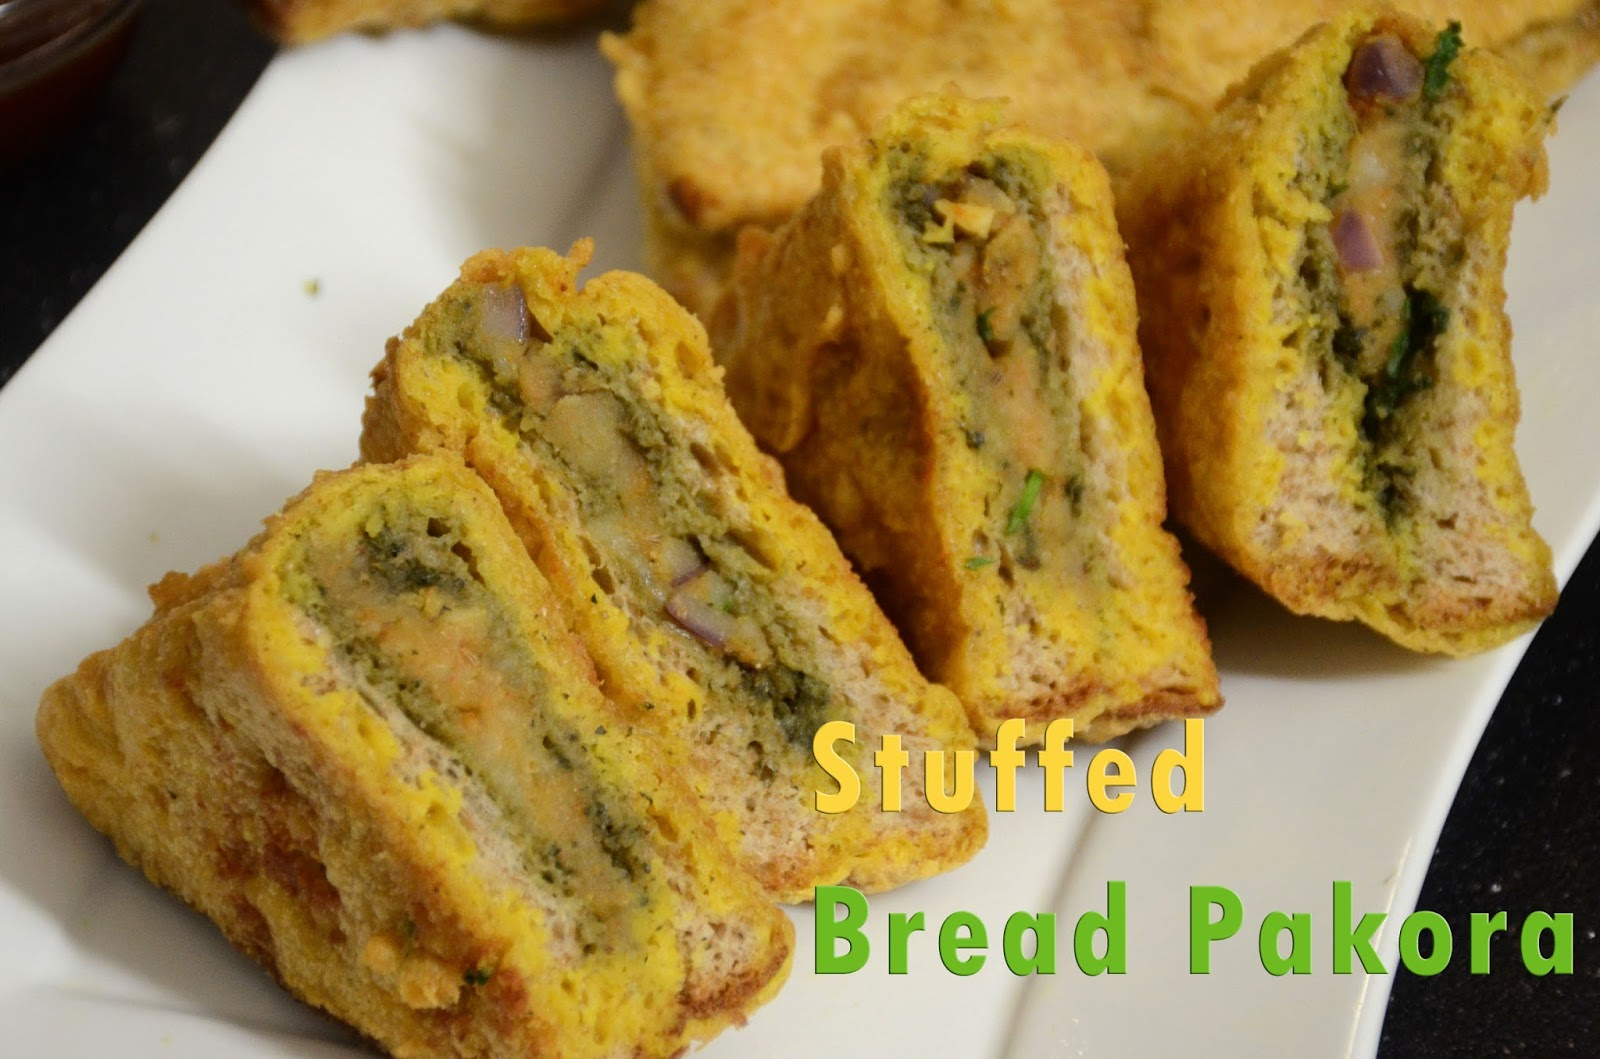 Veggie recipe house stuffed bread pakora quick indian snack recipe stuffed bread pakora bread pakora popular indian street food makes a perfect evening snack with a hot cup of tea in rainy days we used to enjoy this forumfinder Choice Image